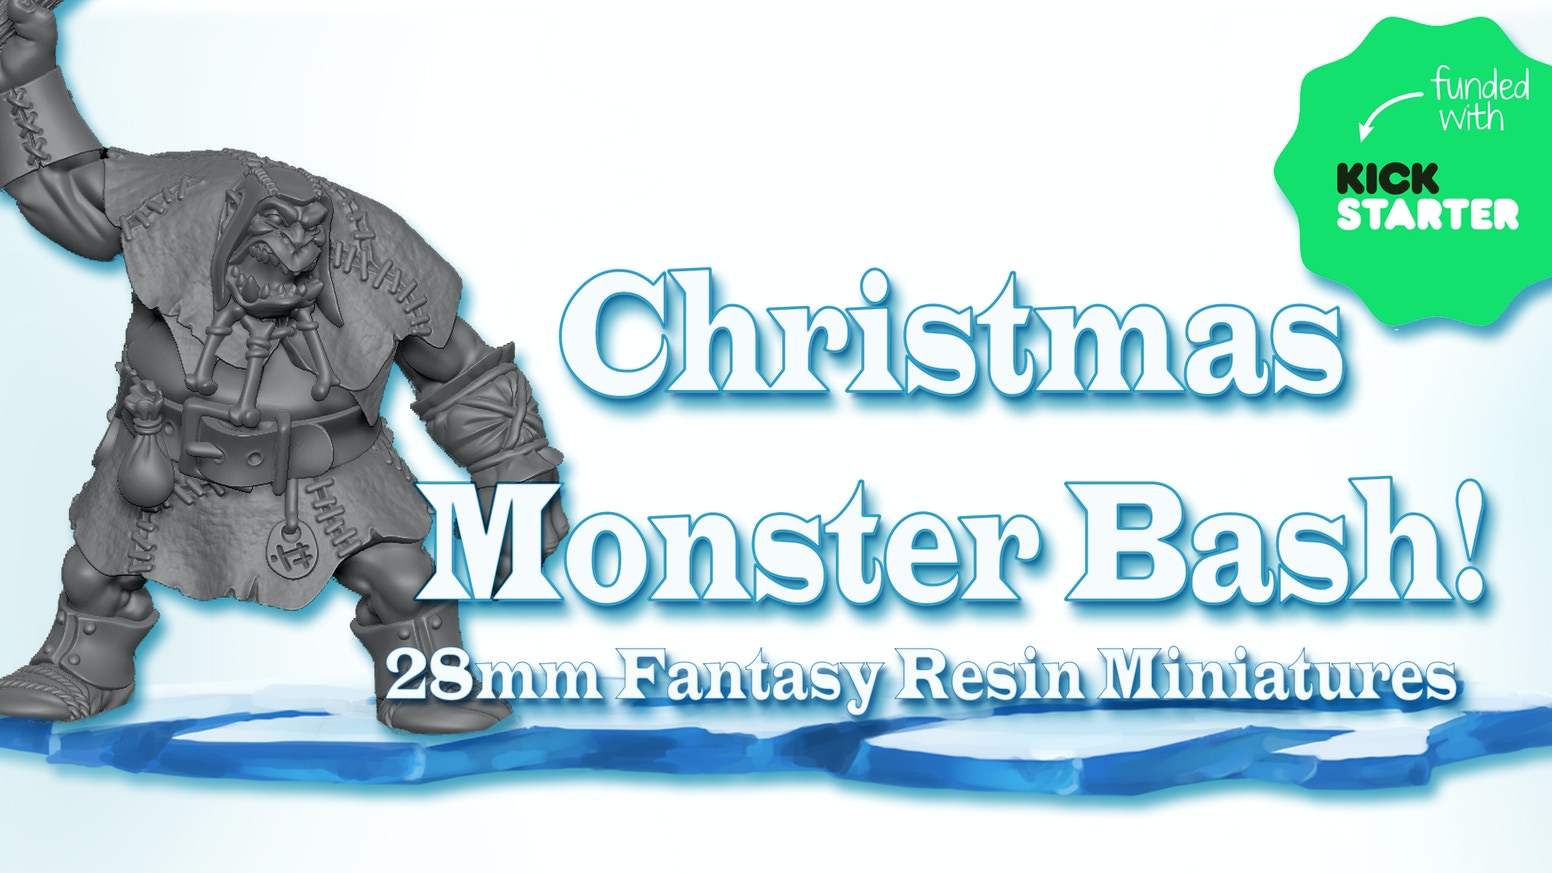 Heroic 28mm Resin Tabletop Monster Miniatures for Collectors and Gamers.